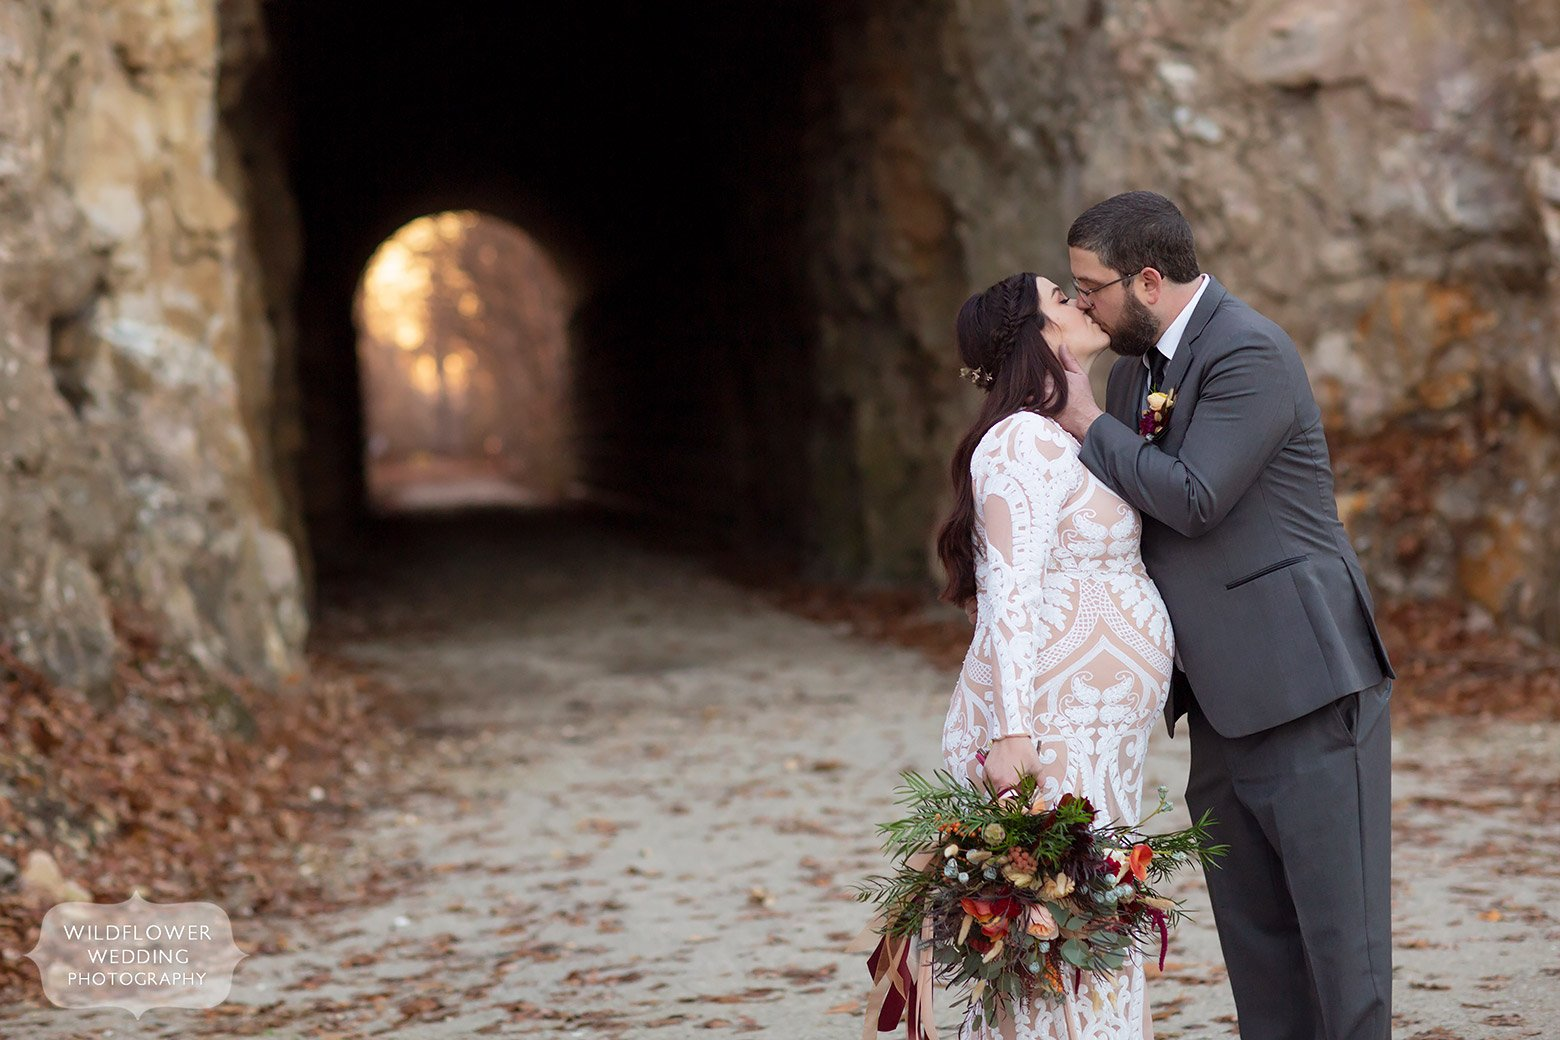 Winter wedding elopement in Katy Trail tunnel in Rocheport, MO.